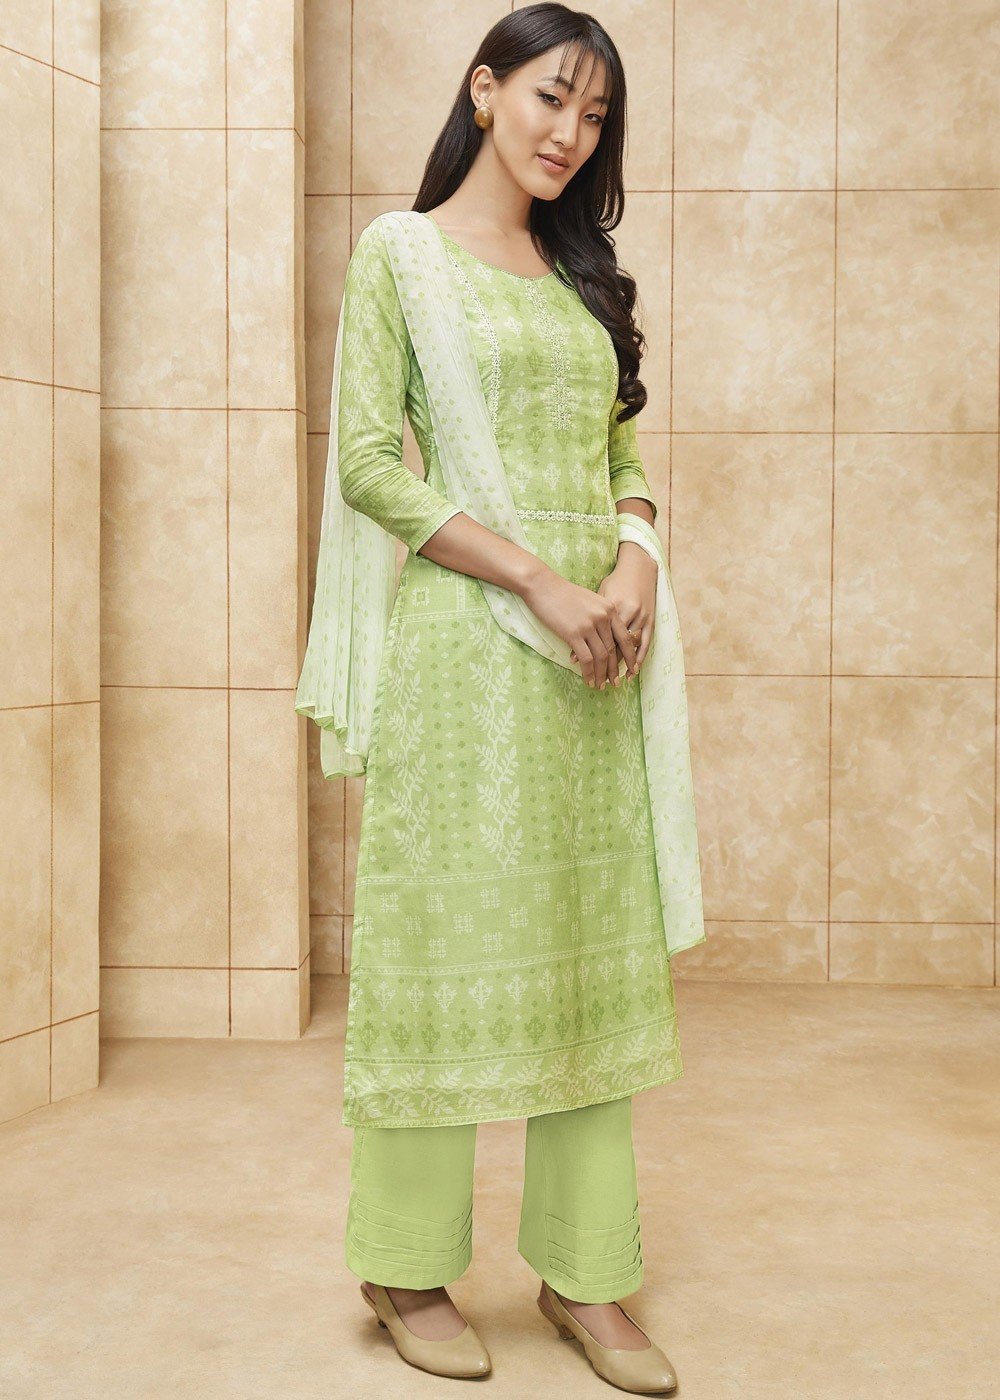 Light Green Cotton Flared Pant Suit With Dupatta 2207sl04,Mint Green Combination Color